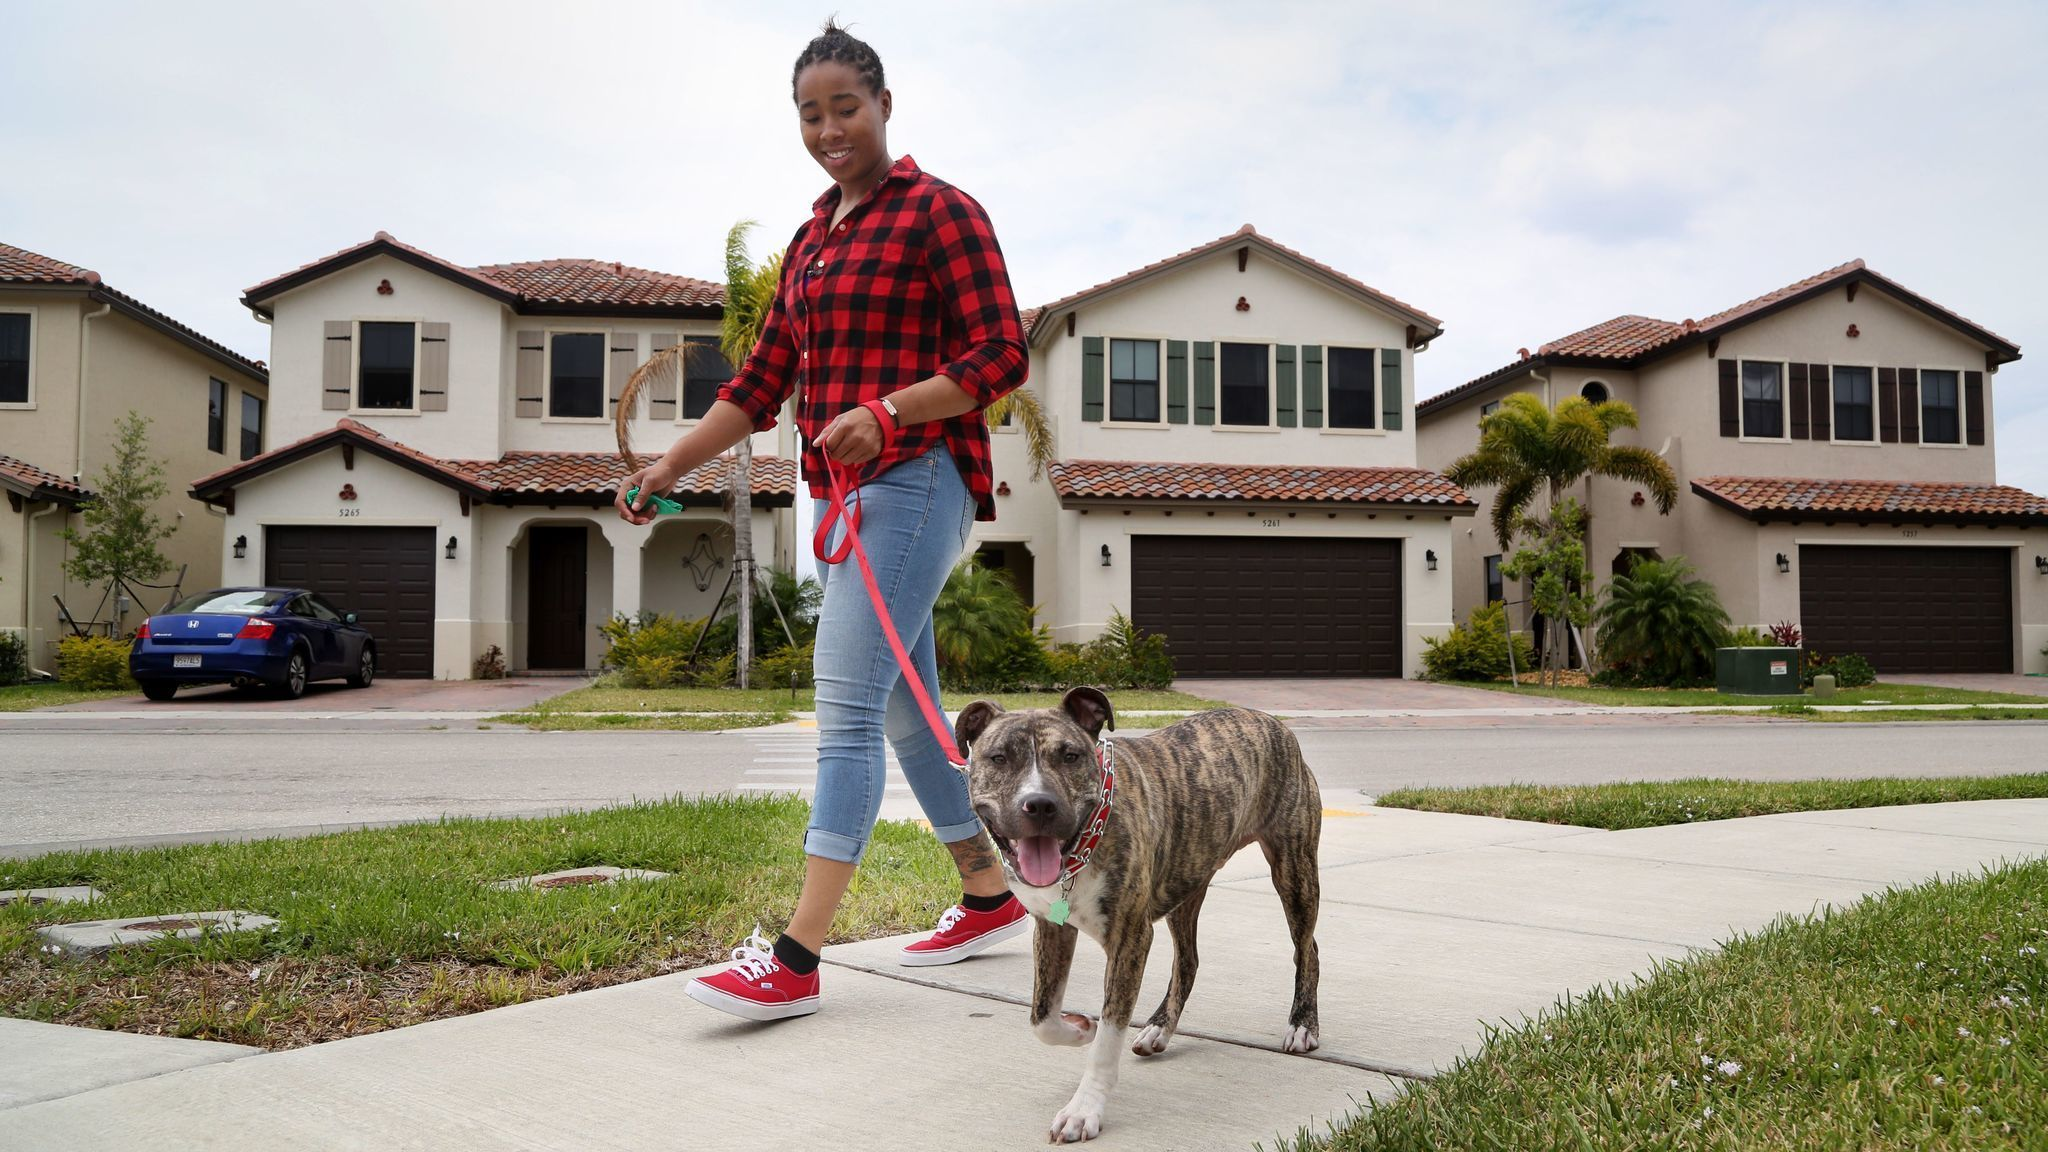 in search of affordable housing, south florida workers head (way